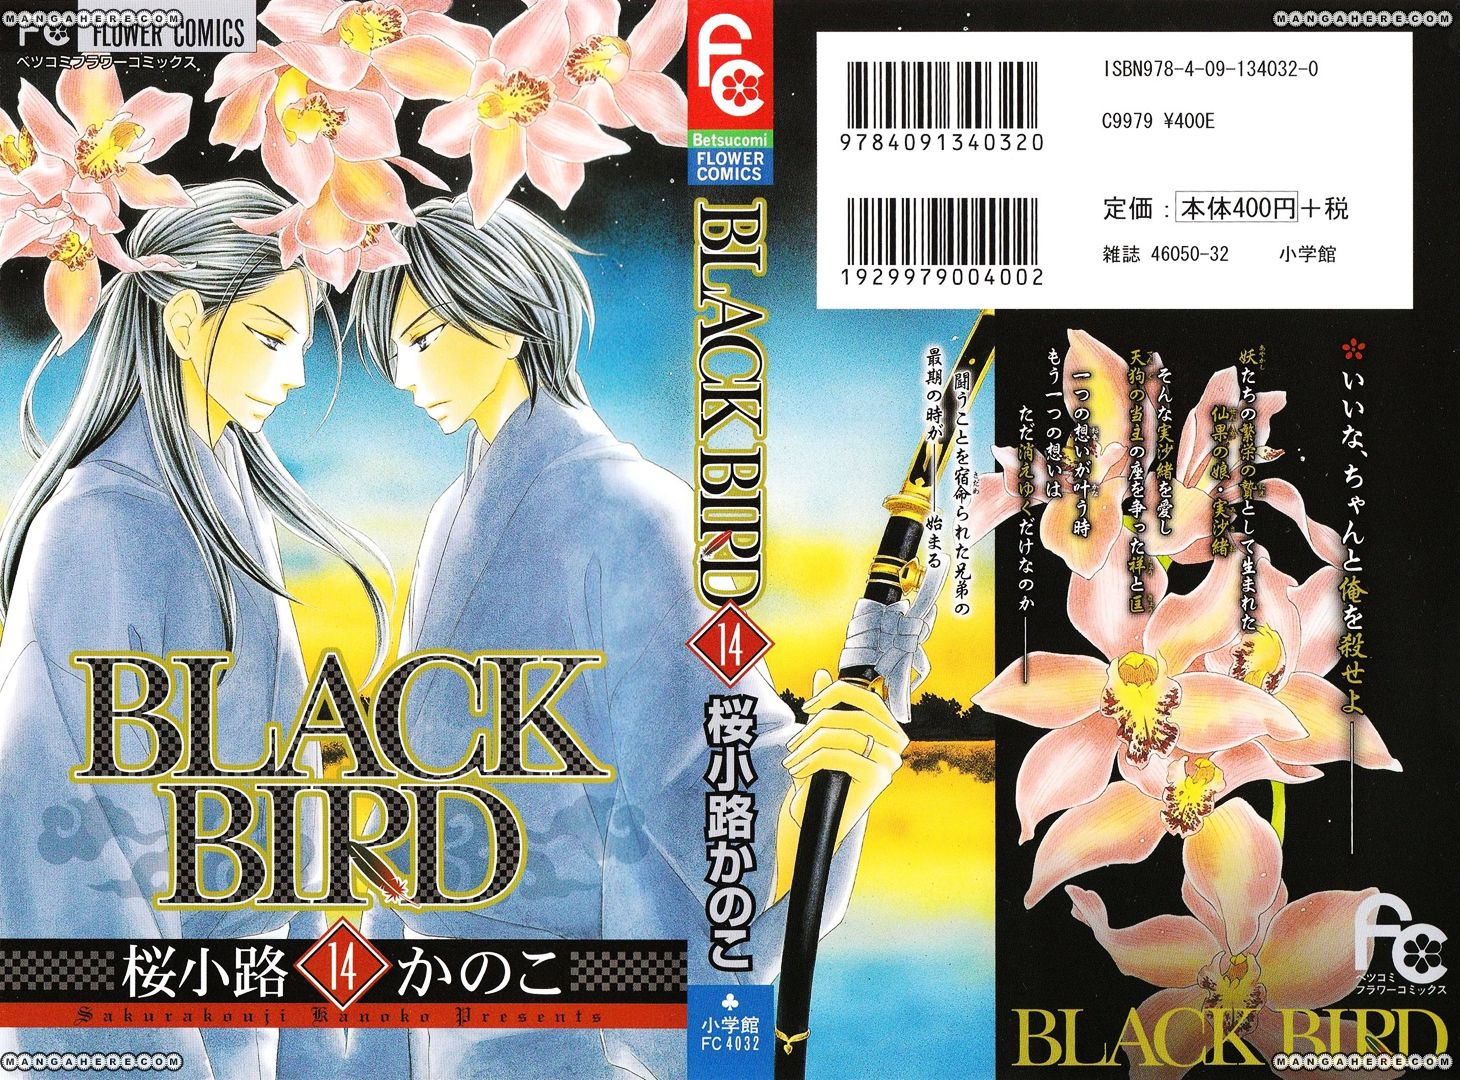 Black Bird - Chapter 52 - 2